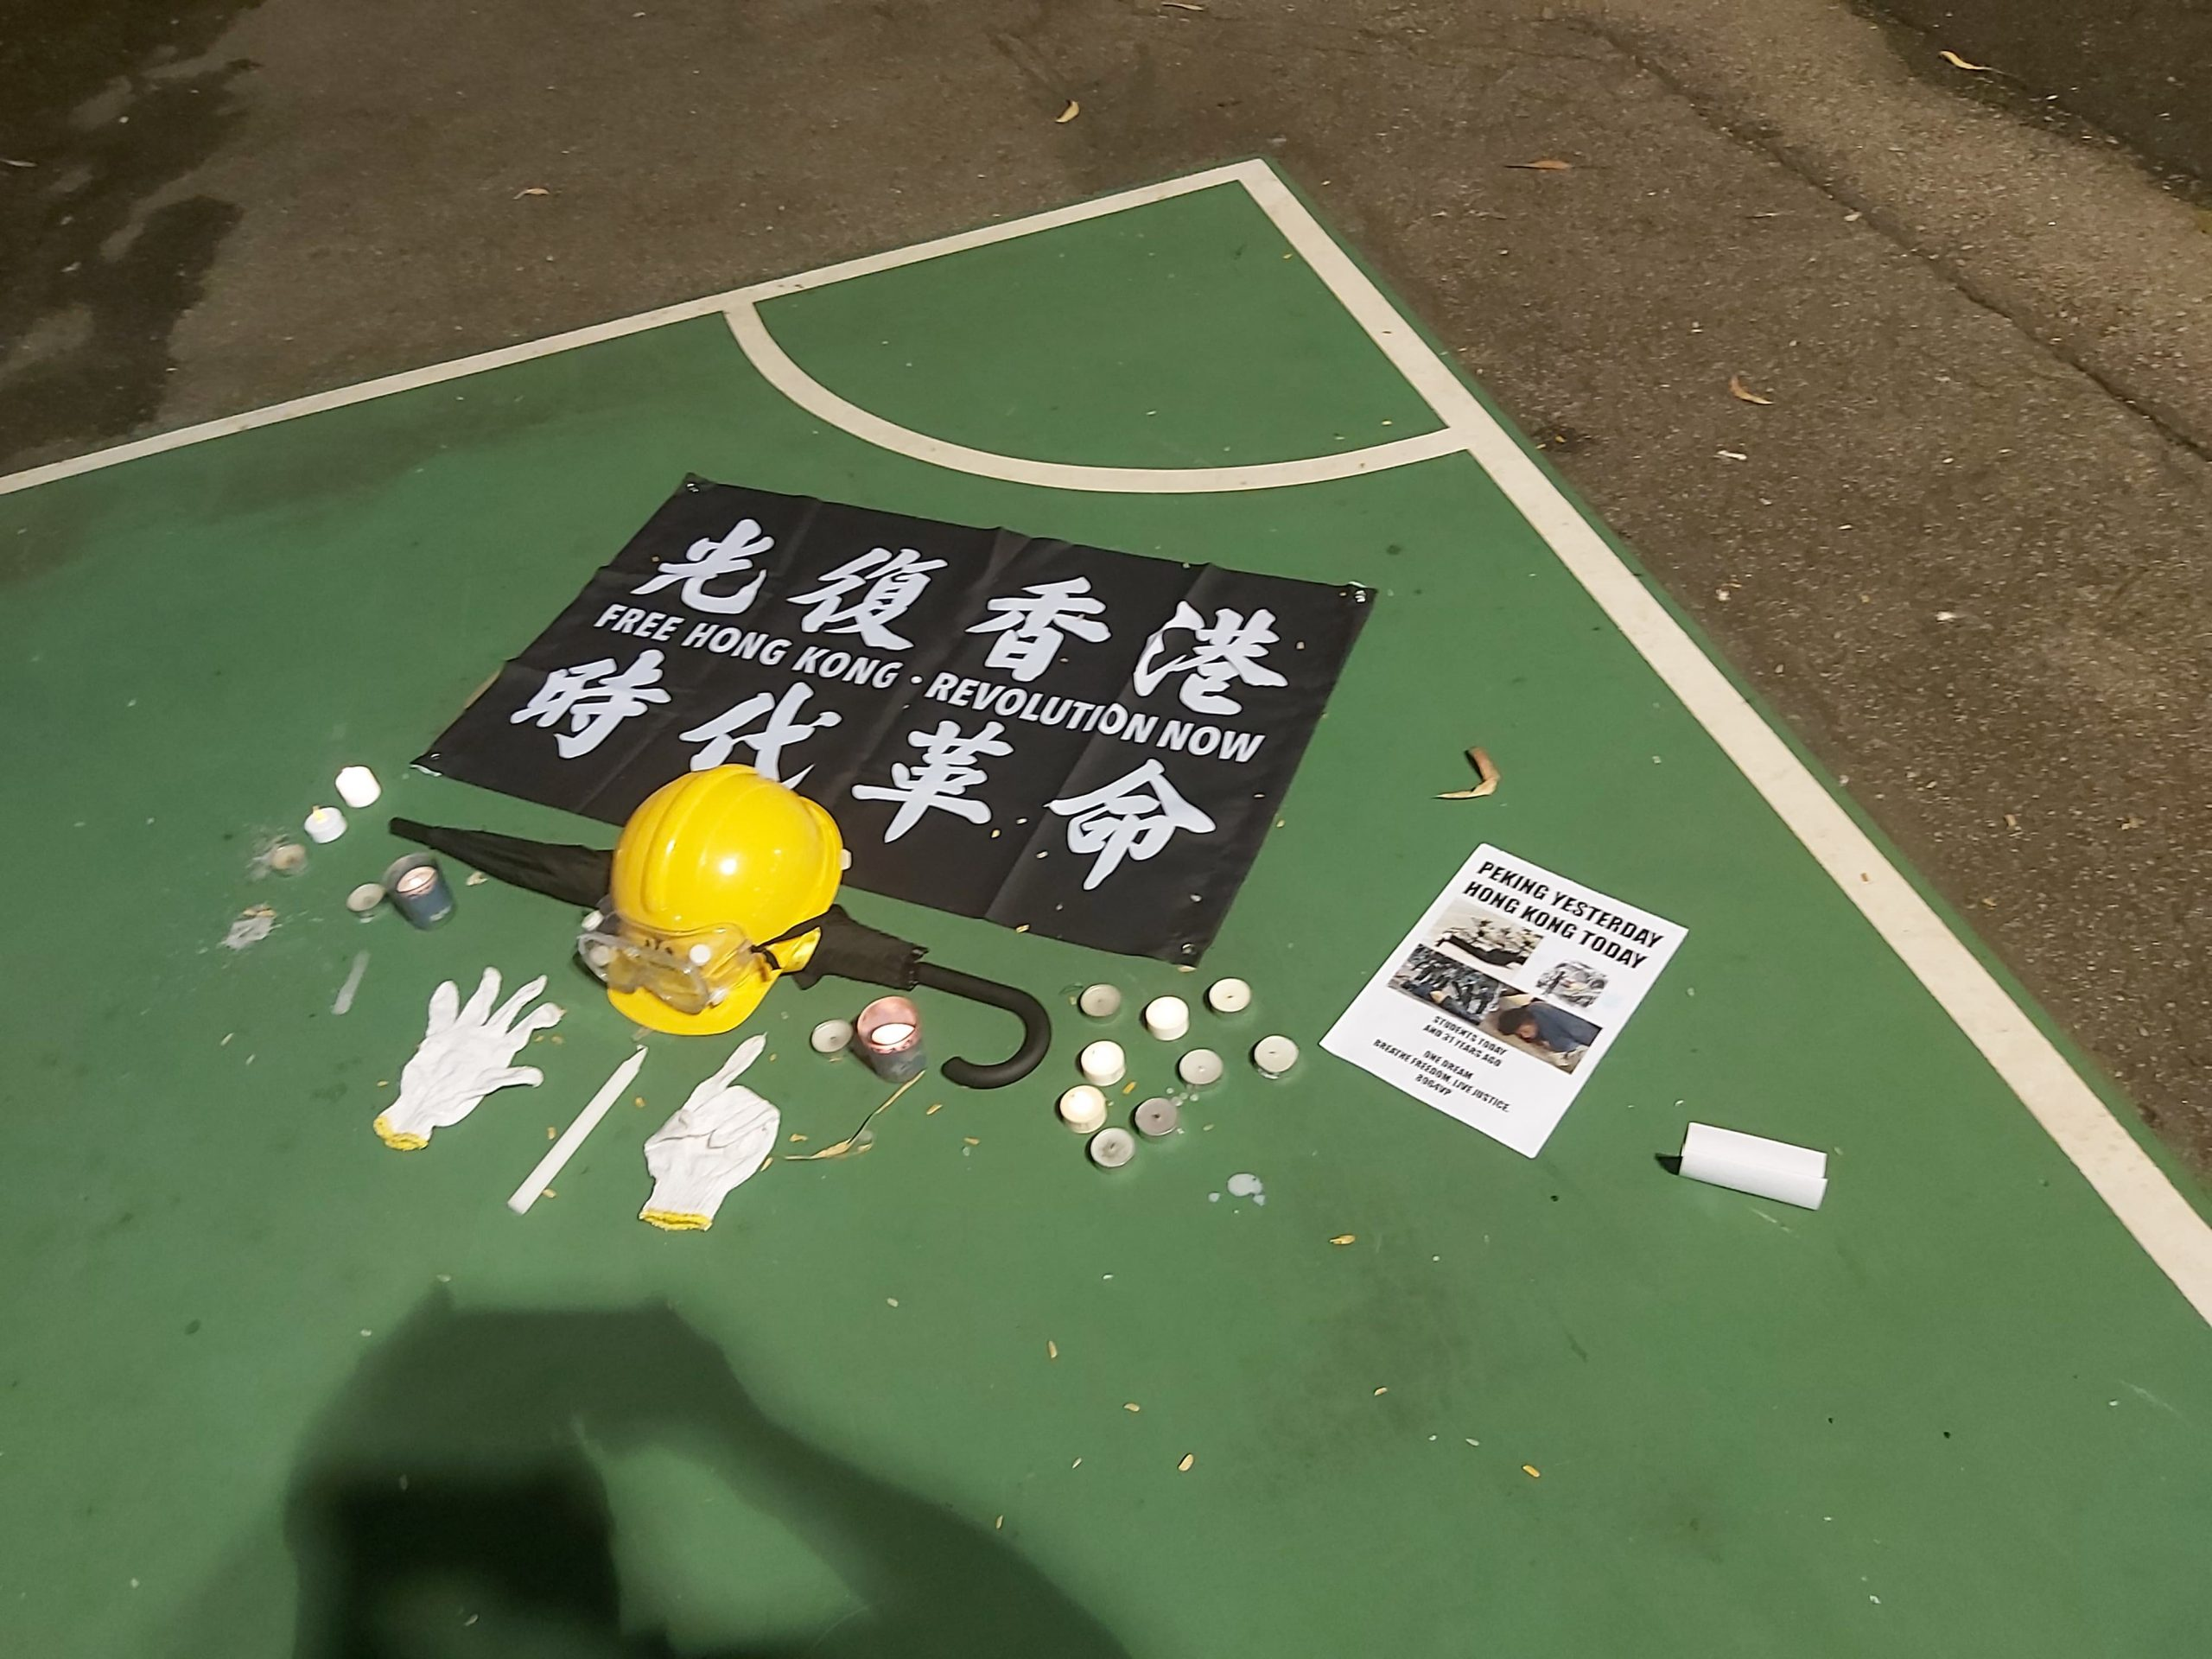 Candlelight vigil for the 31st anniversary of the June 4th incident in Victoria Park, Hong Kong